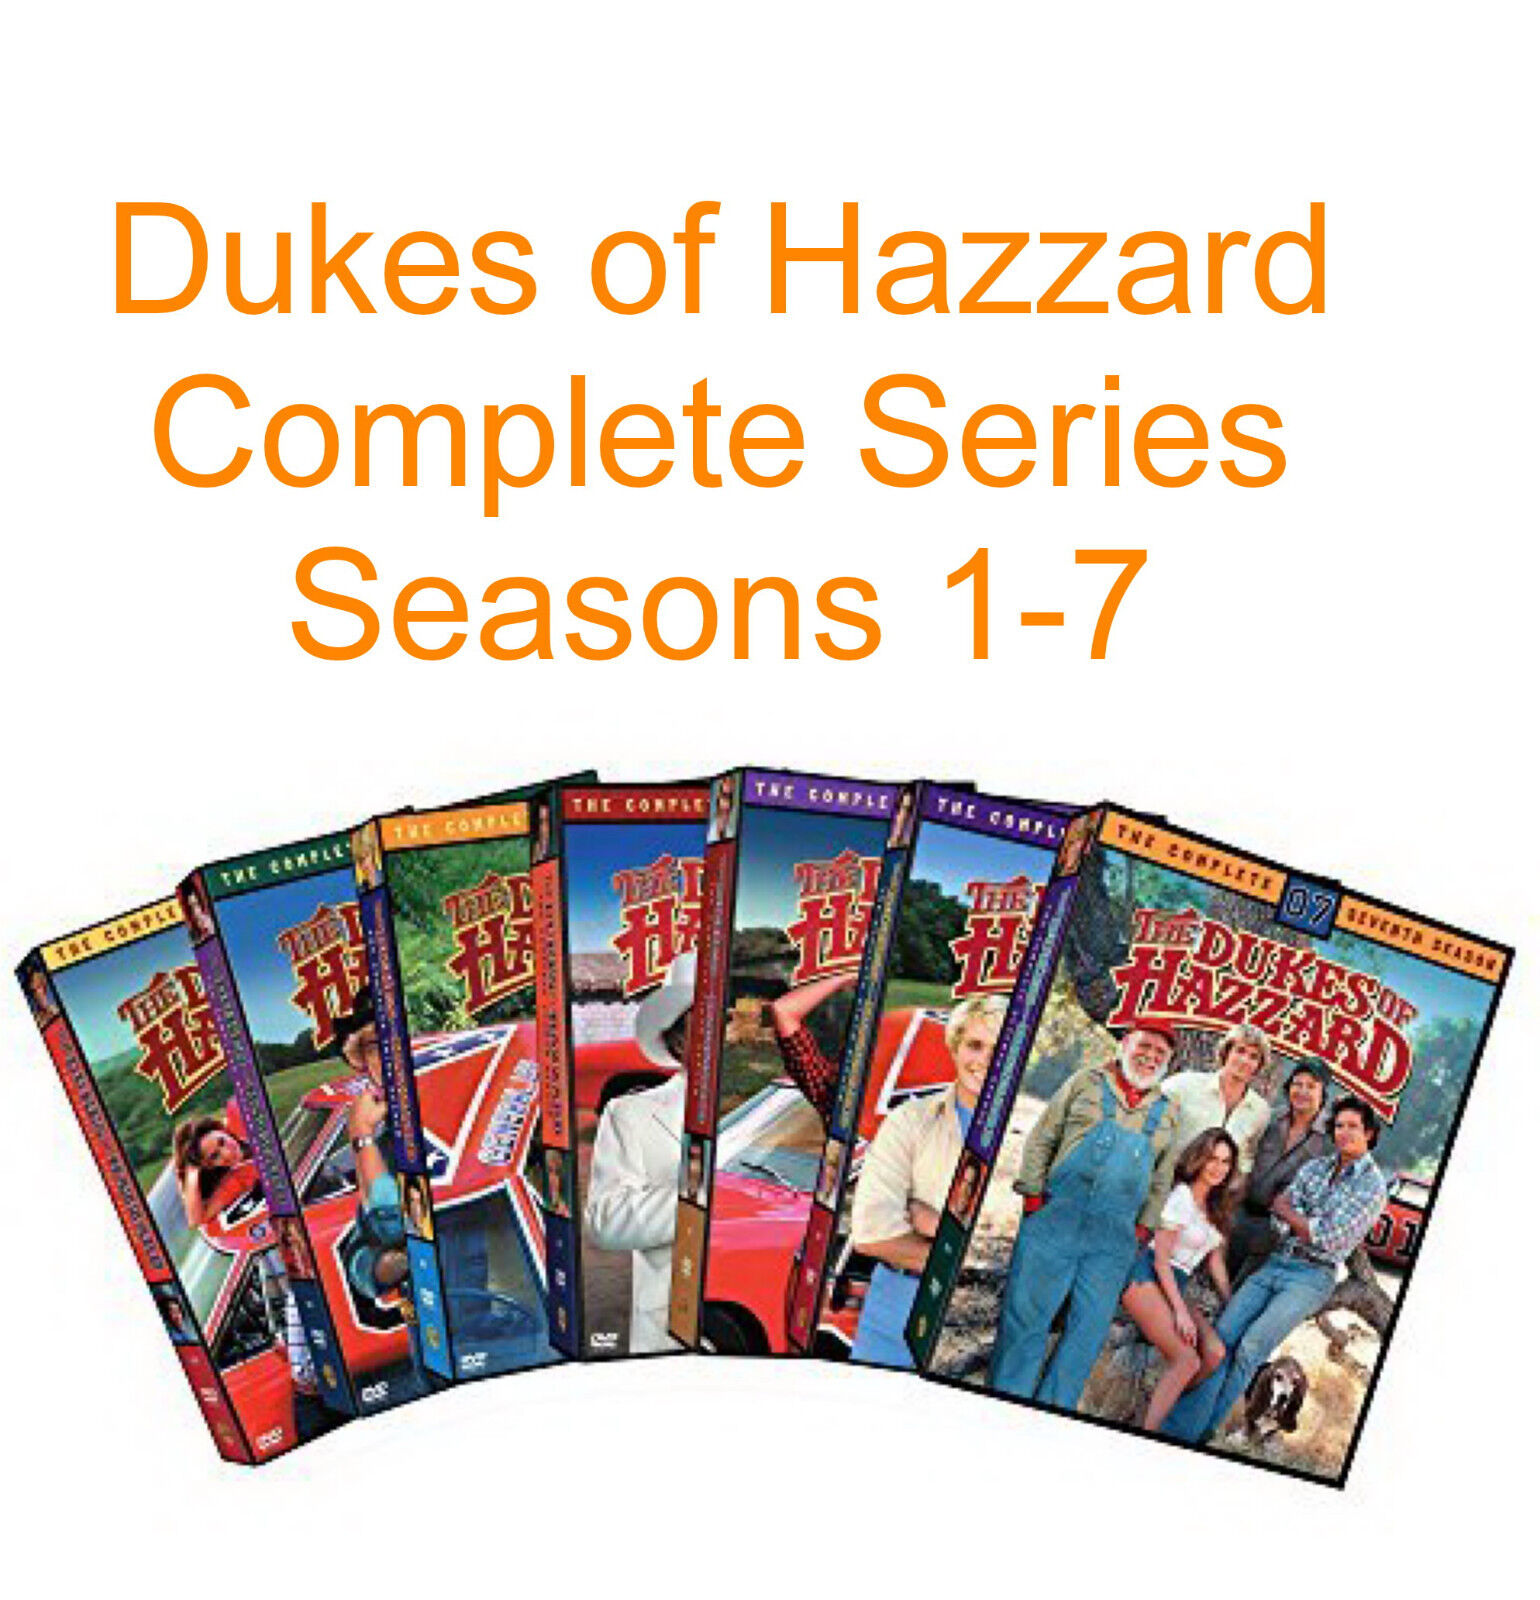 Изображение товара Dukes of Hazzard The Complete TV Series Seasons 1 2 3 4 5 6 7 DVD Set - NEW